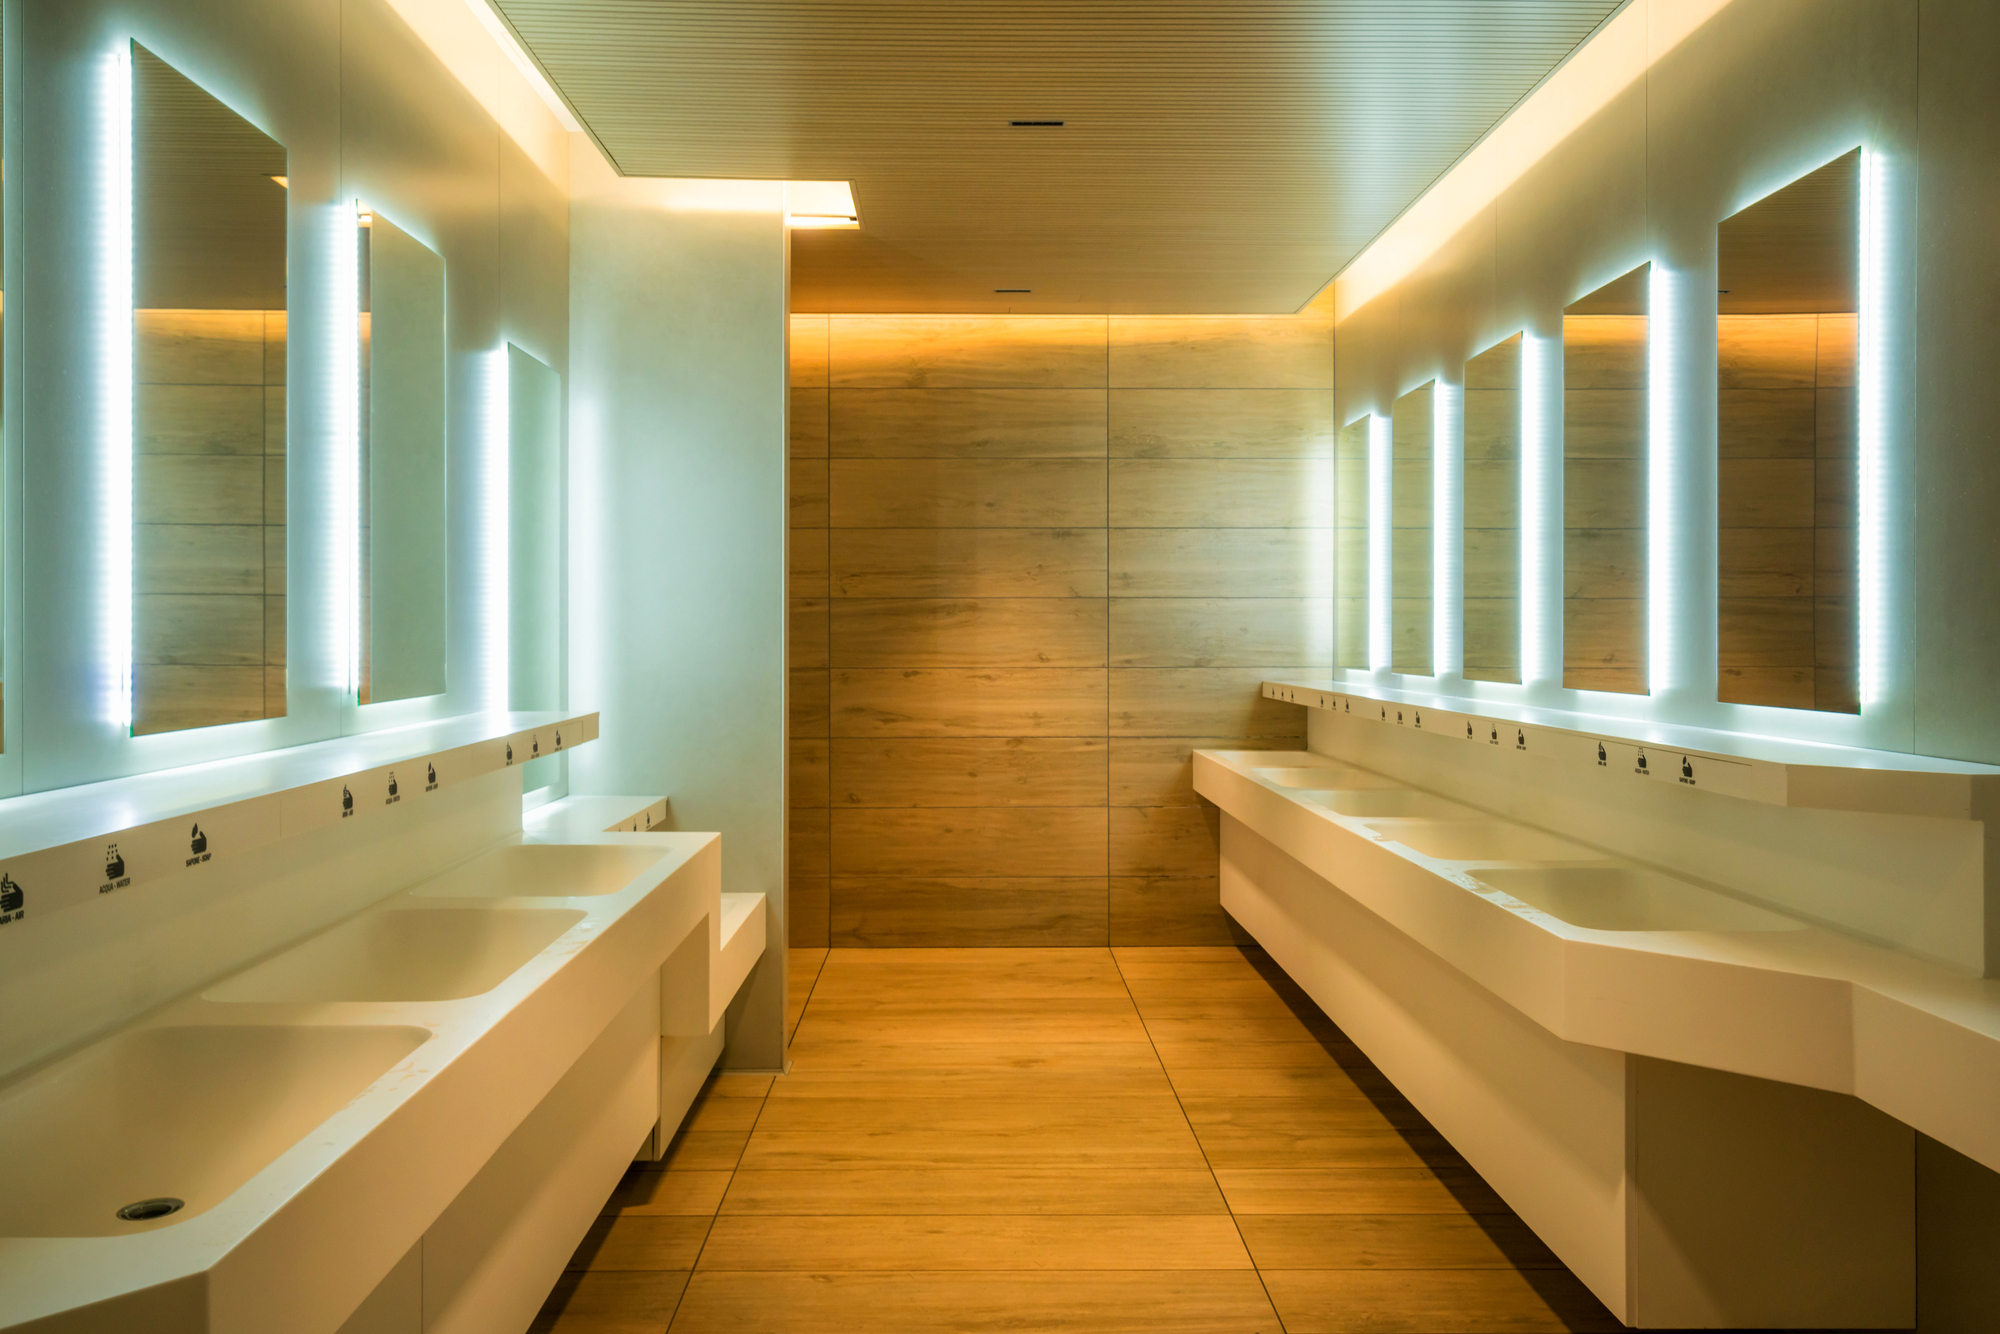 commercial bathroom renovation cost sydney